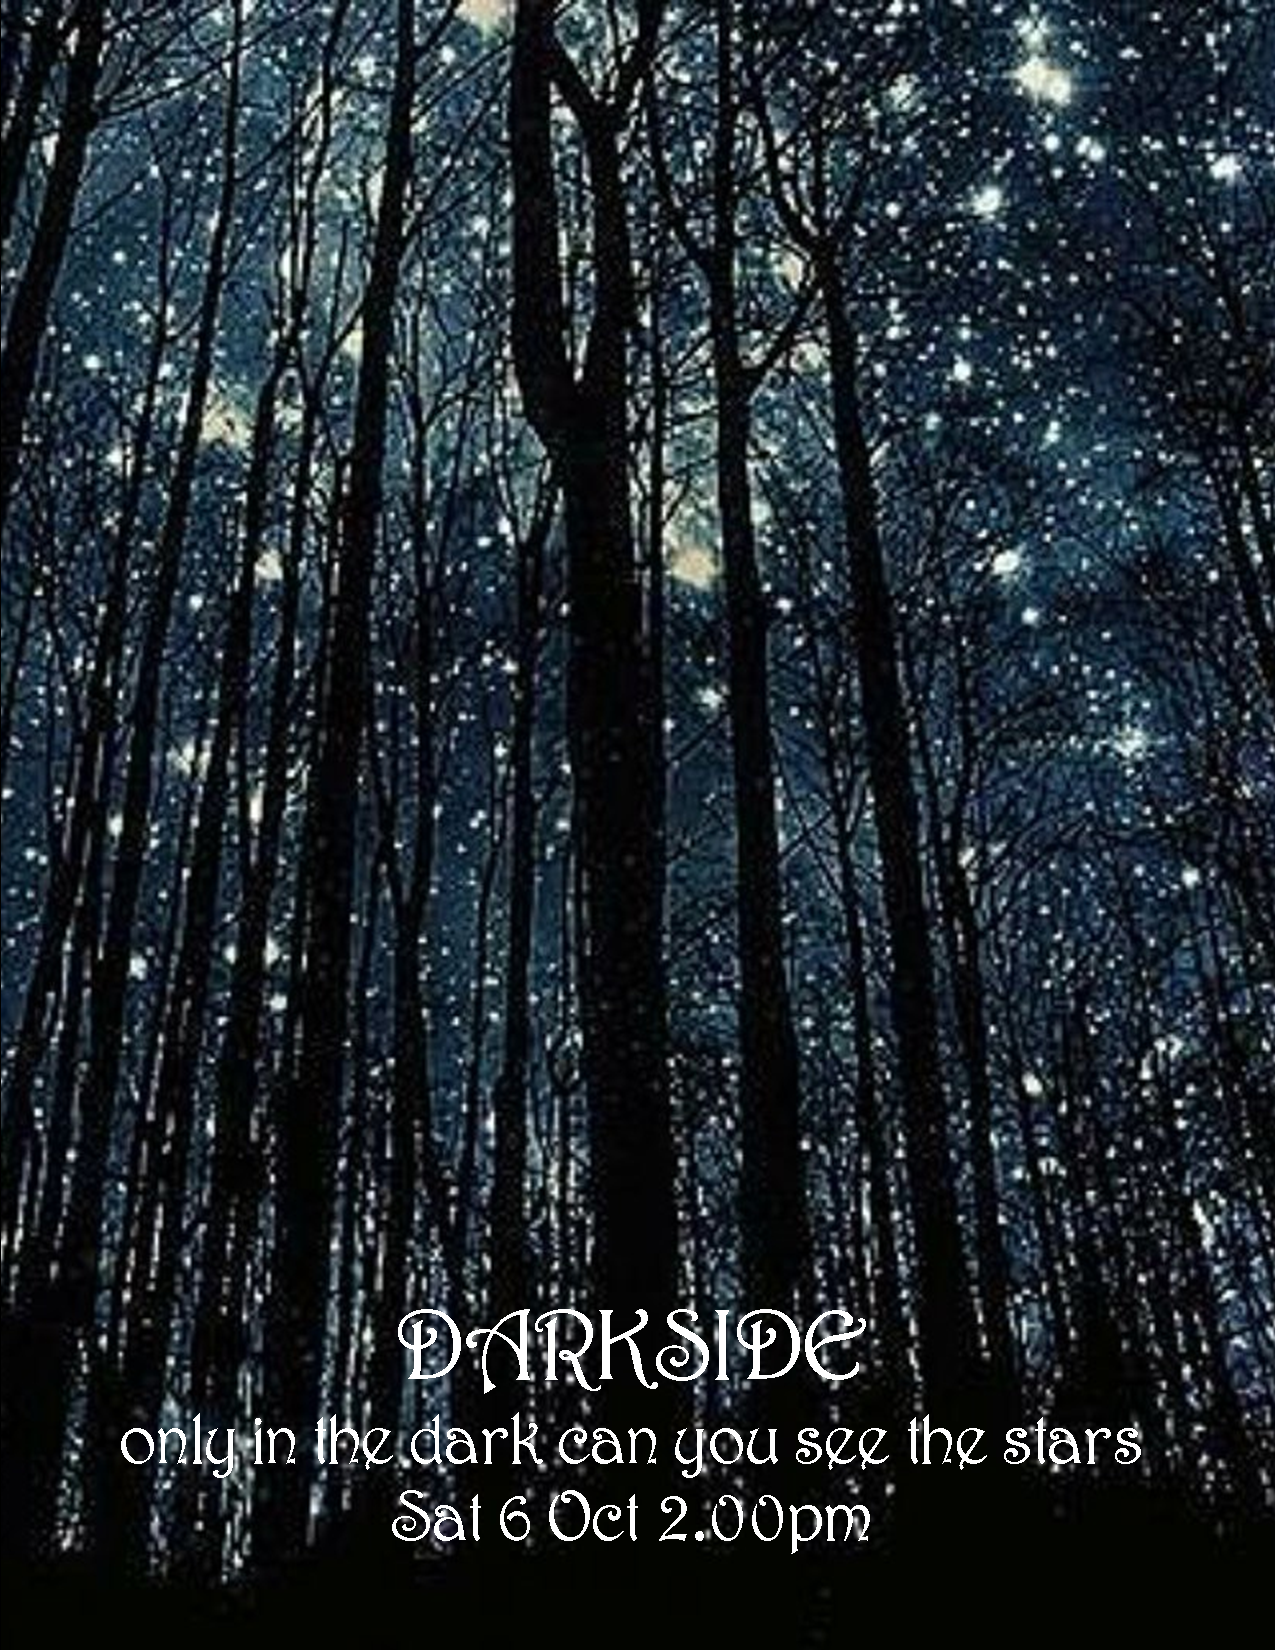 DARKSIDE PARTY POSTER 6 OCT 2018